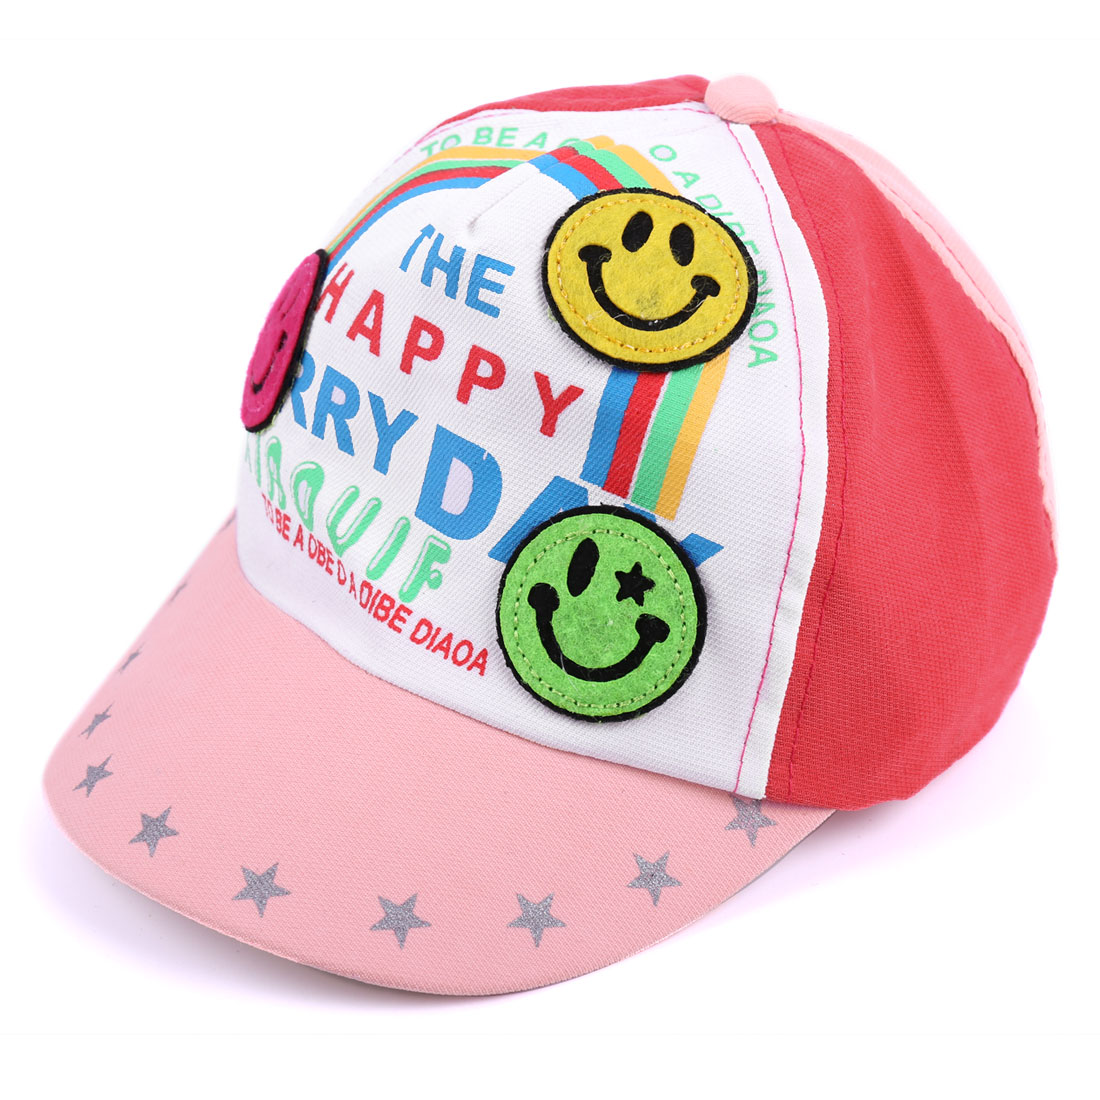 Baby Lovely 3D Smile Face Decor Letters Pattern Light Pink Viros Cap Hat